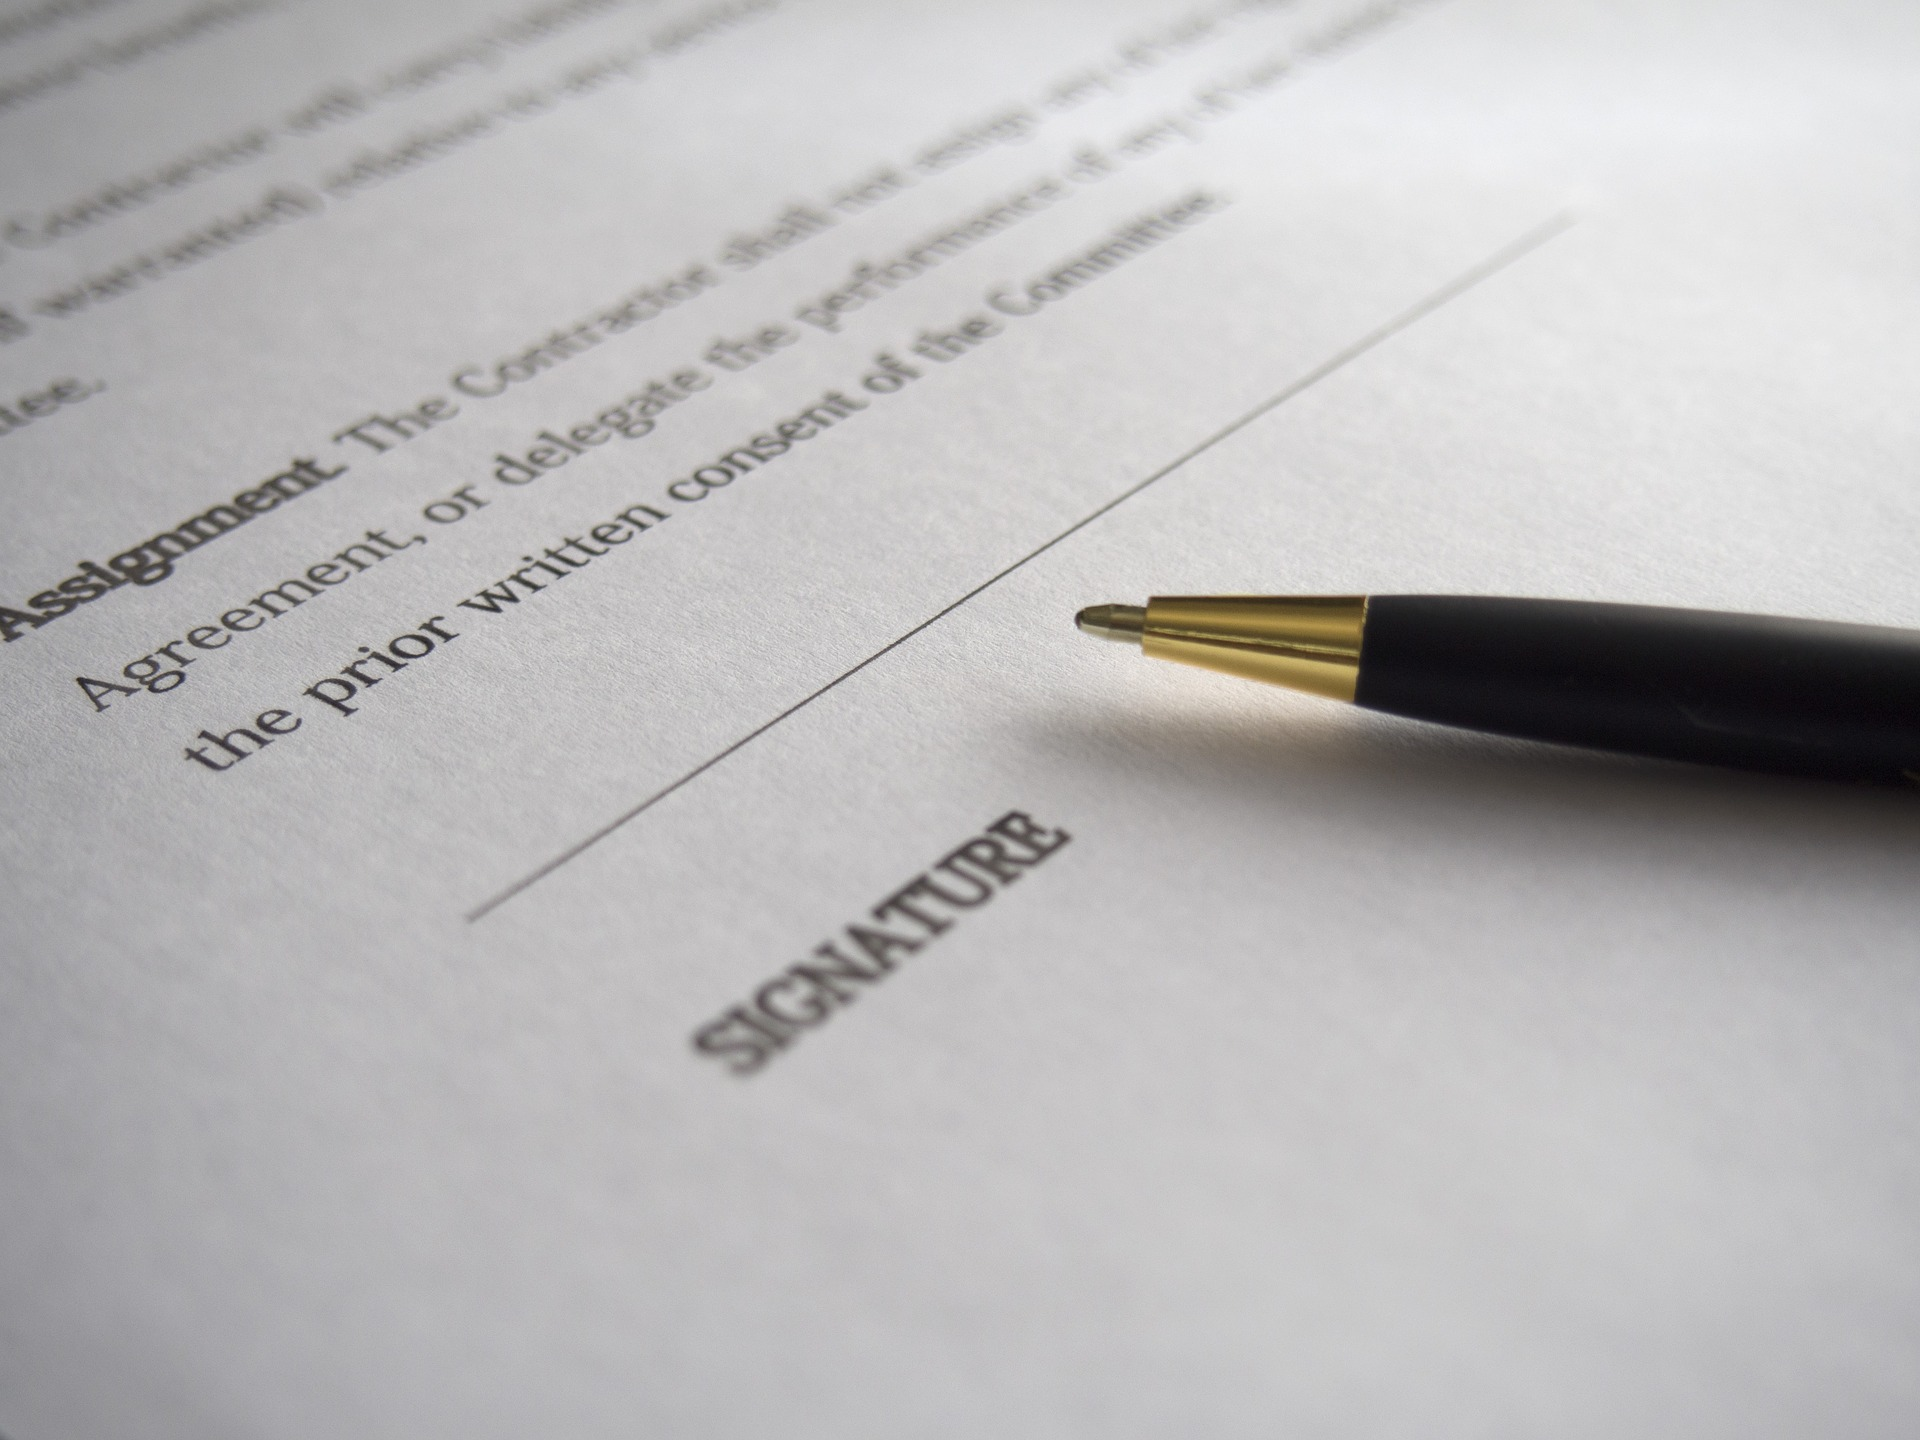 https://pixabay.com/en/business-signature-contract-962364/